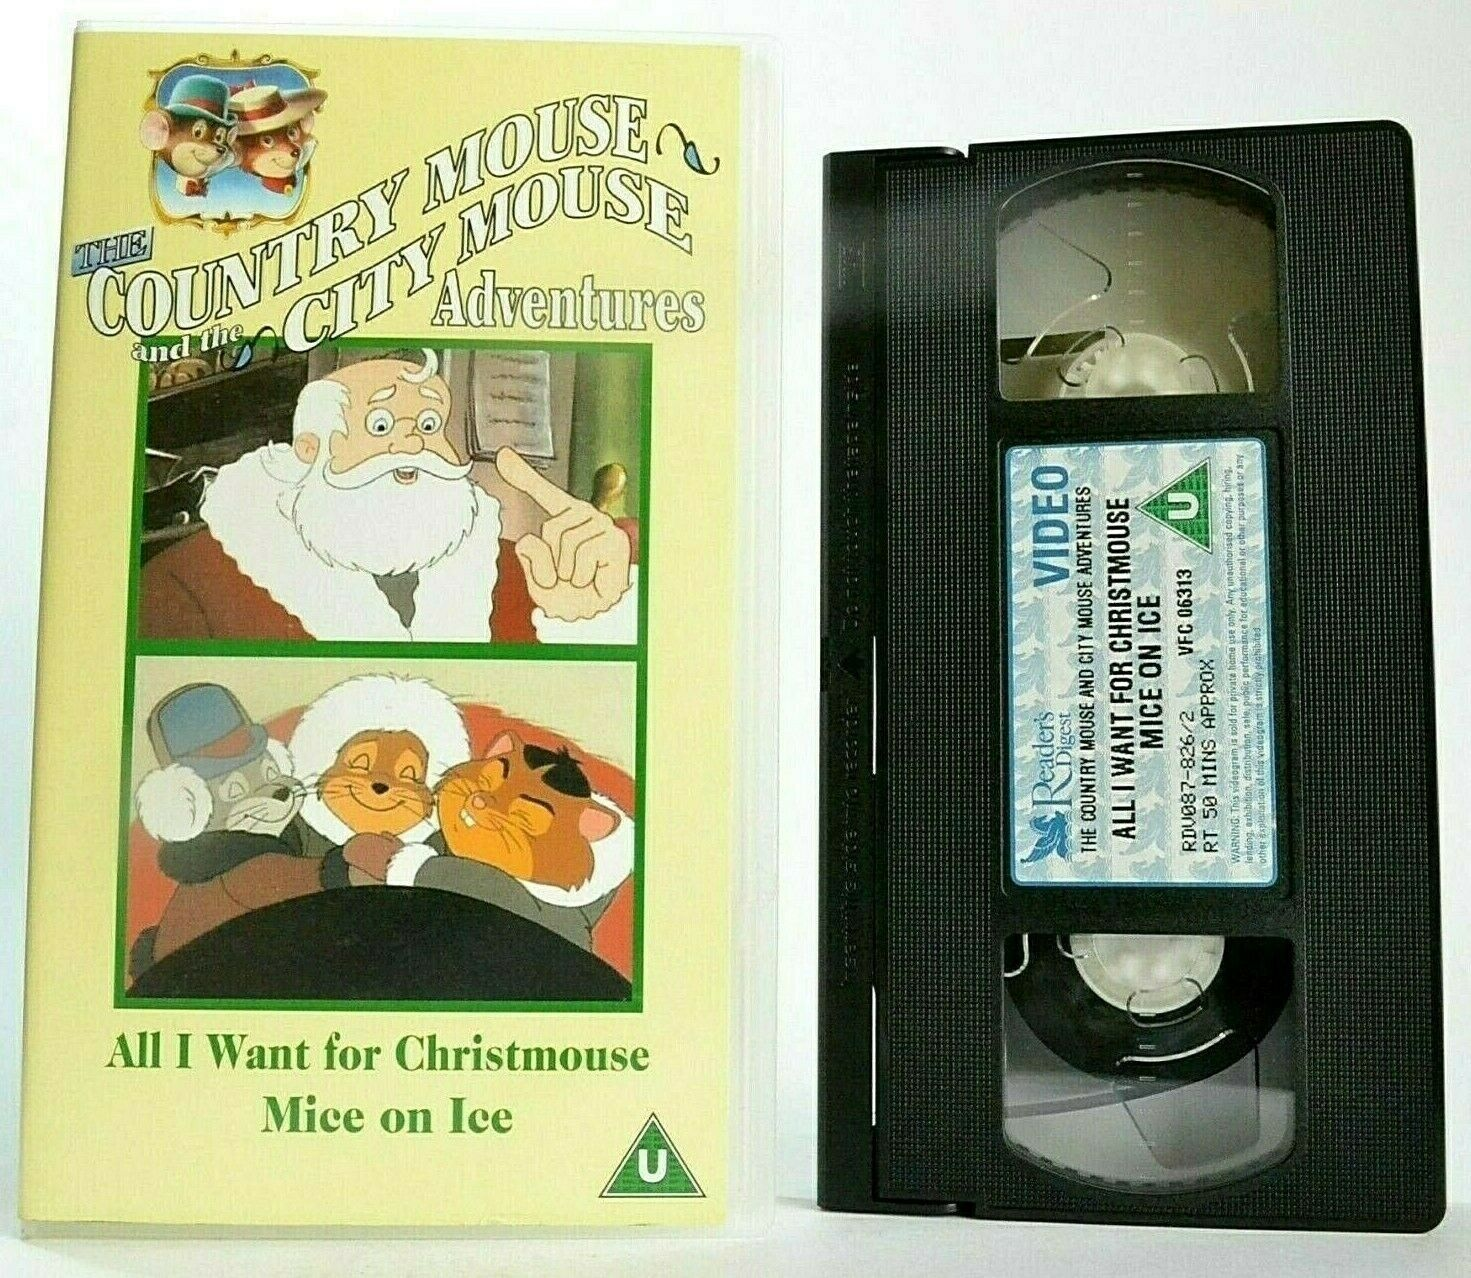 The Country Mouse And The City Mouse Adventures: Mice On Ice - Children's - VHS